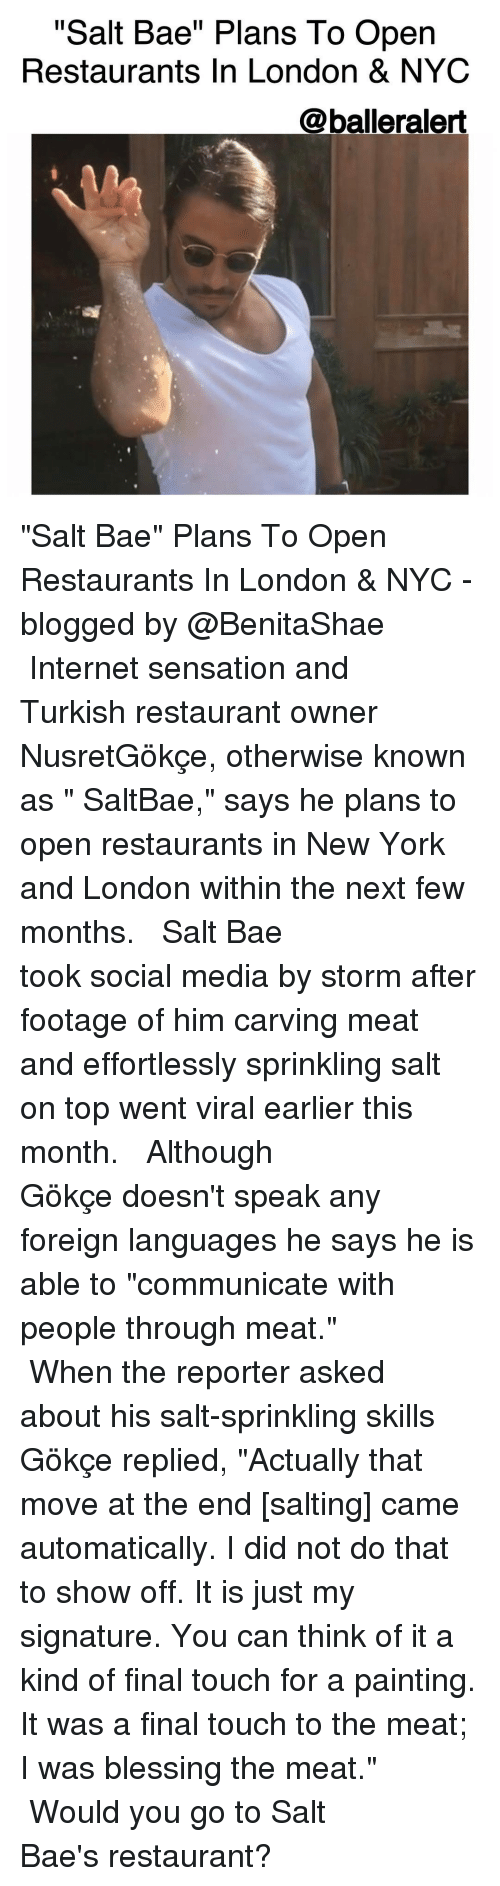 "Sprinkle Salt: ""Salt Bae"" Plans To Open  Restaurants In London & NYC  @balleralert ""Salt Bae"" Plans To Open Restaurants In London & NYC -blogged by @BenitaShae ⠀⠀⠀⠀⠀⠀⠀⠀⠀ ⠀⠀⠀⠀⠀⠀⠀⠀⠀ Internet sensation and Turkish restaurant owner NusretGökçe, otherwise known as "" SaltBae,"" says he plans to open restaurants in New York and London within the next few months. ⠀⠀⠀⠀⠀⠀⠀⠀⠀ ⠀⠀⠀⠀⠀⠀⠀⠀⠀ Salt Bae took social media by storm after footage of him carving meat and effortlessly sprinkling salt on top went viral earlier this month. ⠀⠀⠀⠀⠀⠀⠀⠀⠀ ⠀⠀⠀⠀⠀⠀⠀⠀⠀ Although Gökçe doesn't speak any foreign languages he says he is able to ""communicate with people through meat."" ⠀⠀⠀⠀⠀⠀⠀⠀⠀ ⠀⠀⠀⠀⠀⠀⠀⠀⠀ When the reporter asked about his salt-sprinkling skills Gökçe replied, ""Actually that move at the end [salting] came automatically. I did not do that to show off. It is just my signature. You can think of it a kind of final touch for a painting. It was a final touch to the meat; I was blessing the meat."" ⠀⠀⠀⠀⠀⠀⠀⠀⠀ ⠀⠀⠀⠀⠀⠀⠀⠀⠀ Would you go to Salt Bae's restaurant?"